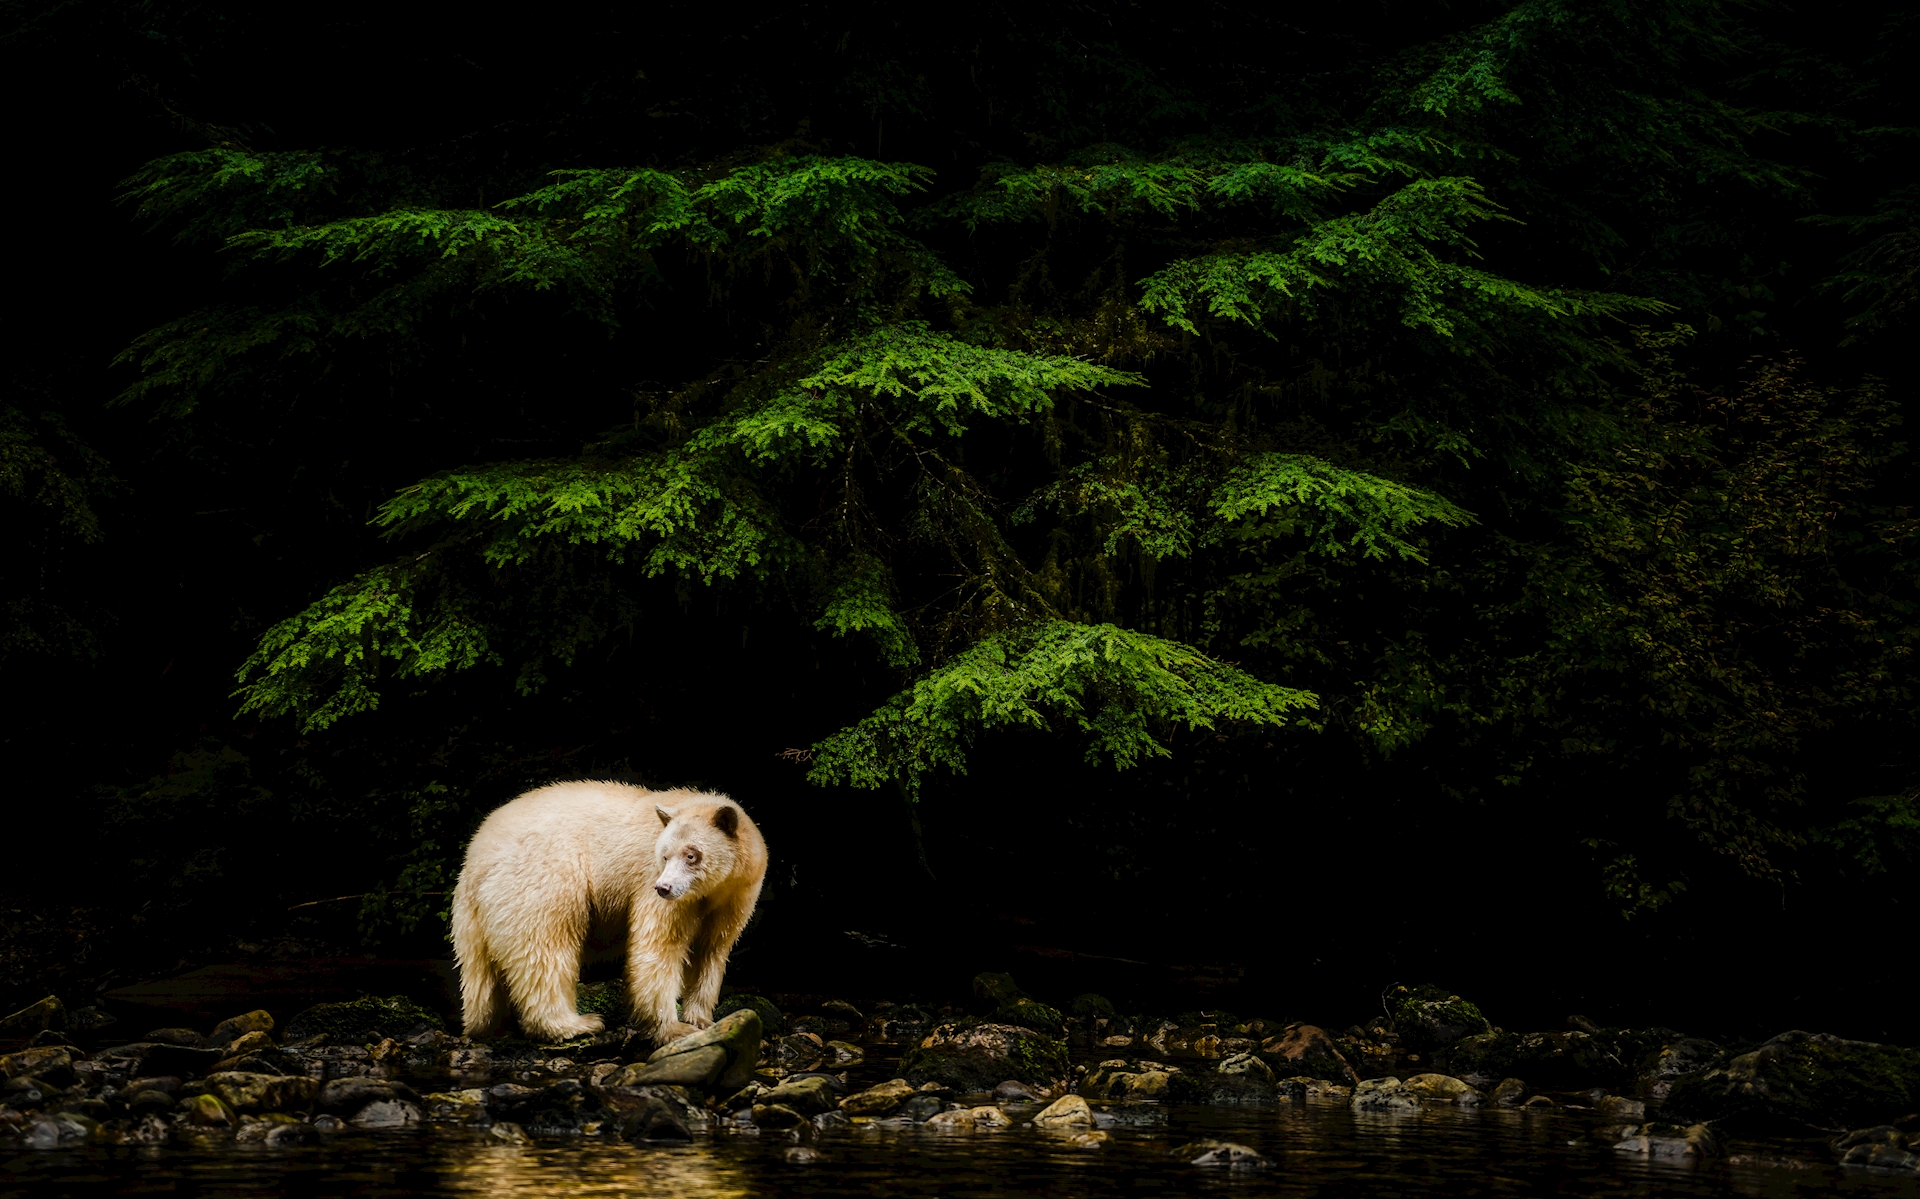 Spirit Bear posters & prints by Peter Lindgren